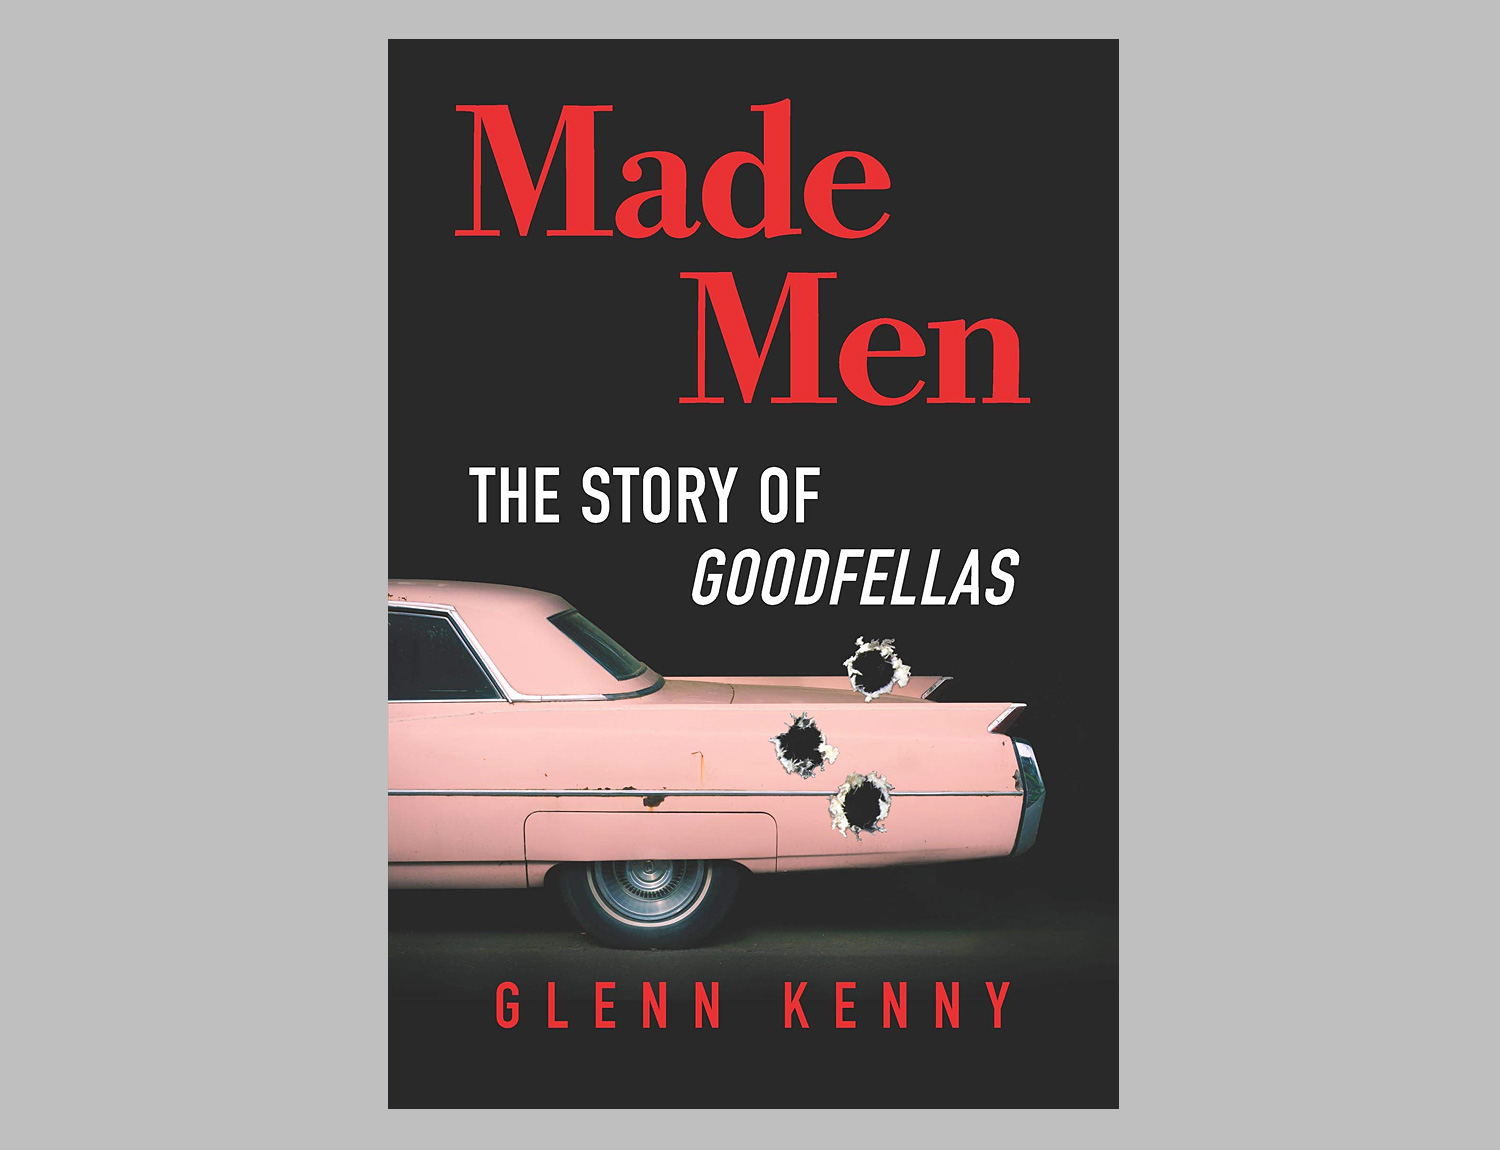 Made Men: The Story of Goodfellas at werd.com